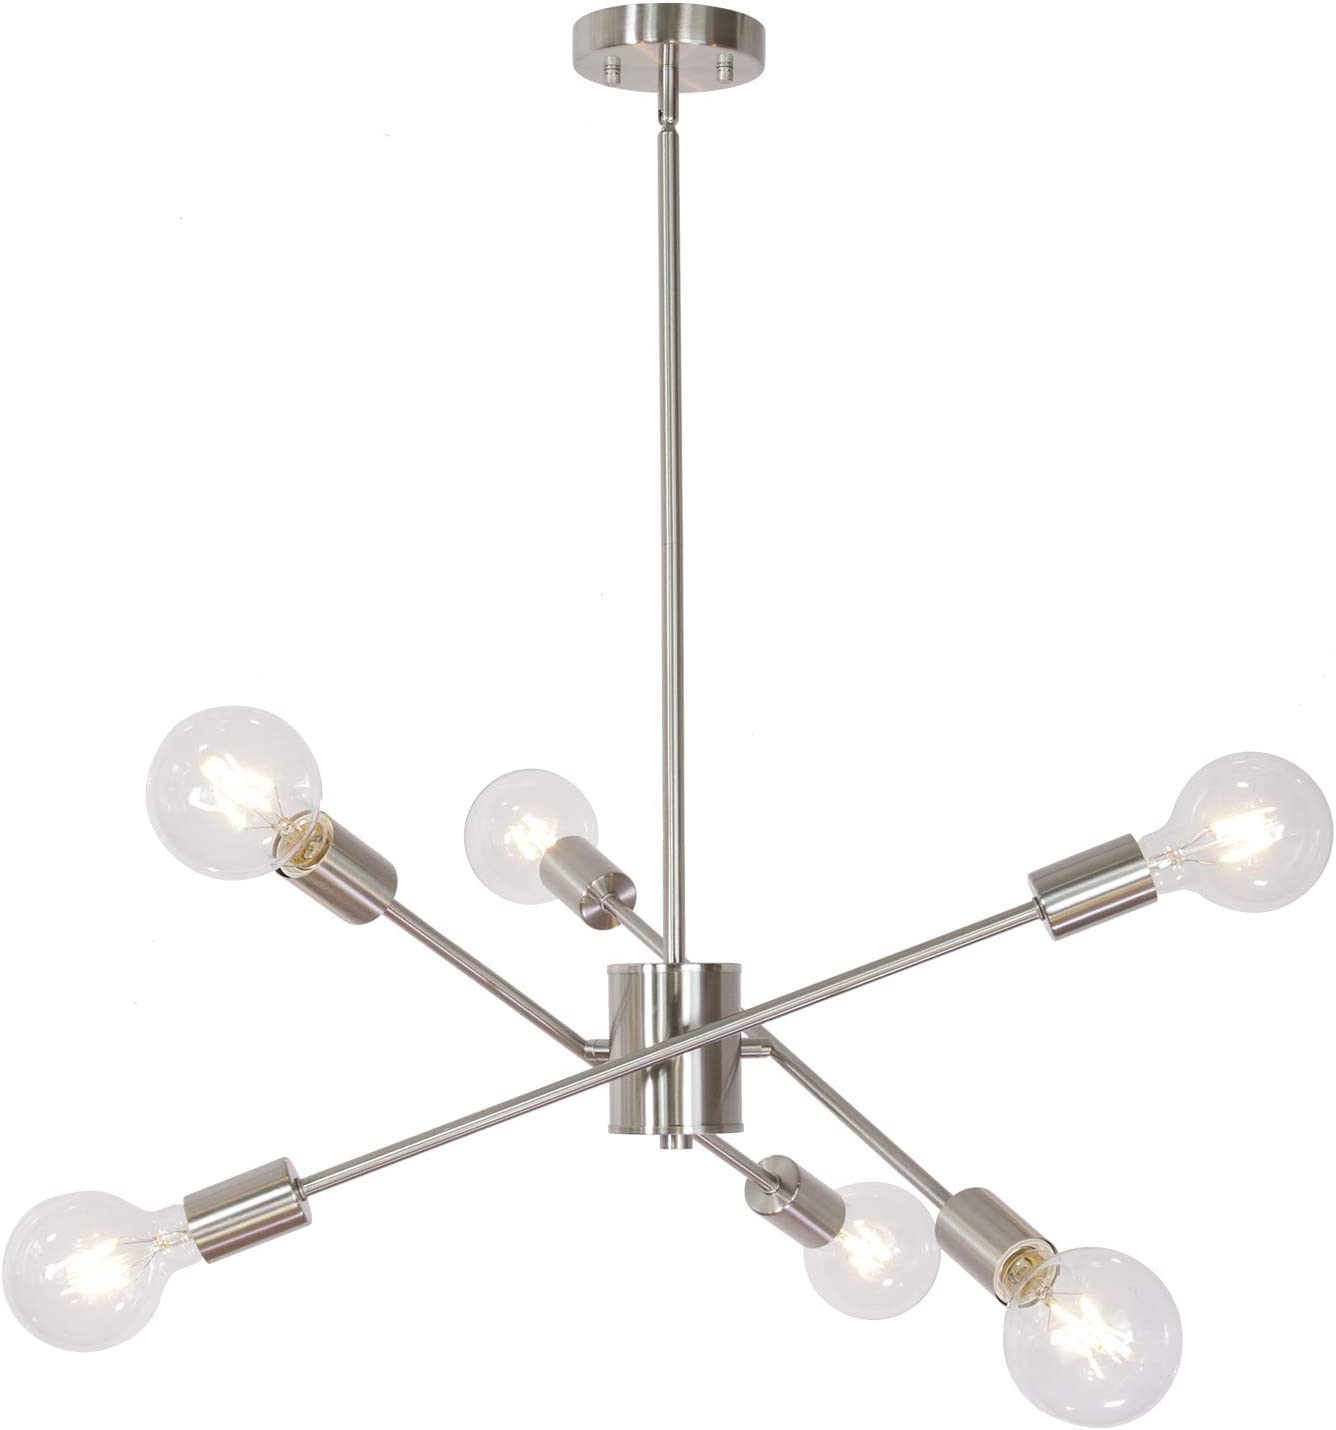 MELUCEE Modern Sputnik Chandelier Lighting Brushed Nickel 6 Lights, Industrial Ceiling Light Fixture Semi Flush Mount Pendant Lighting for Kitchen Island Bedroom Foyer